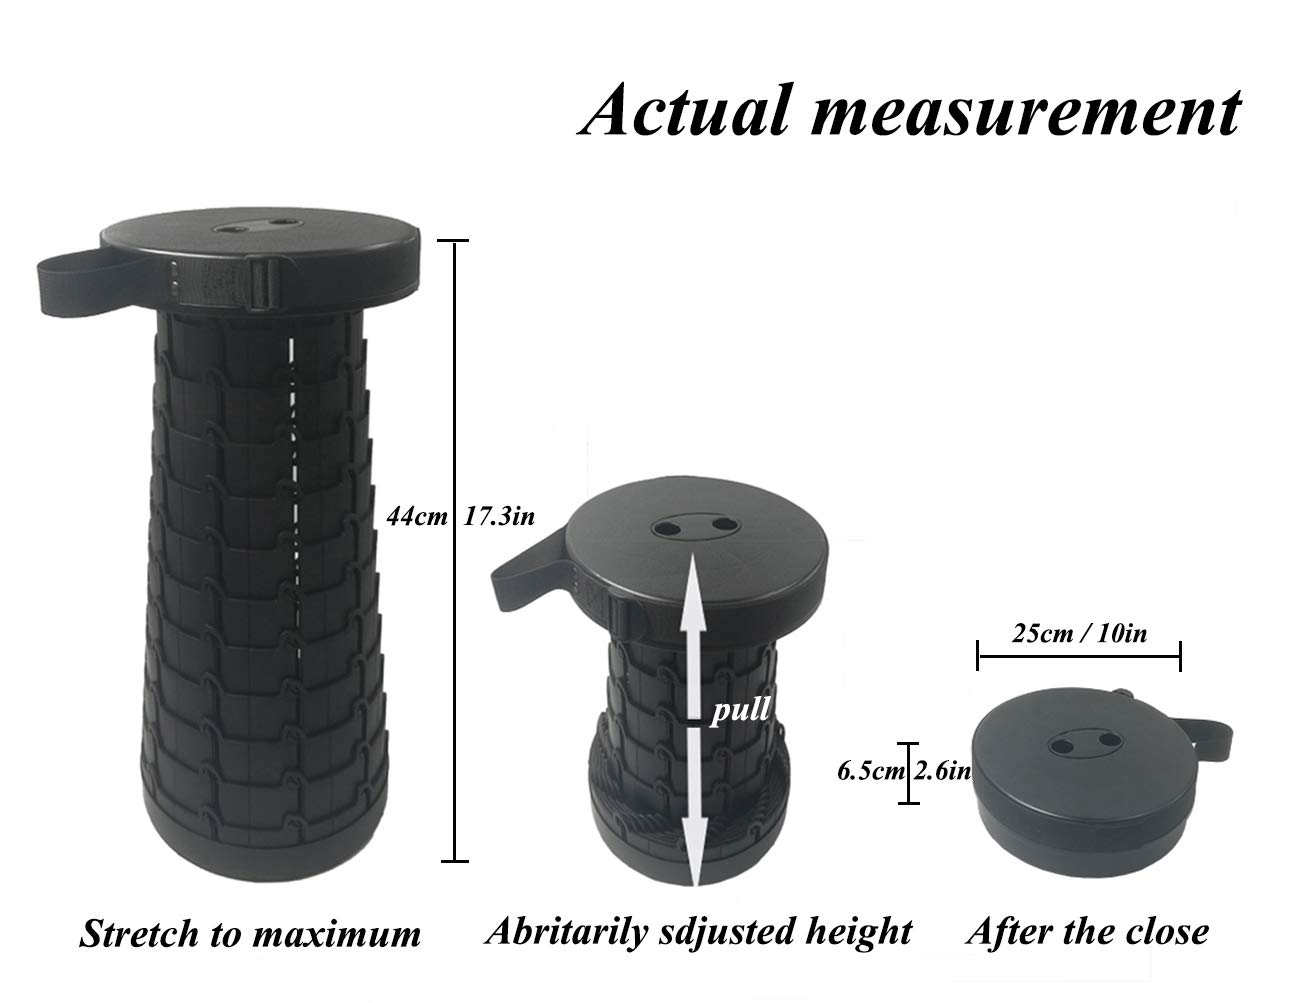 Portable Folding Stool with a Carry Handle for Camping Fishing Picnics Outdoor Activities Ajudtable Telescoping Folding Stool Black Adjustable Telescopic Camping Stool with an Adjustable Strap